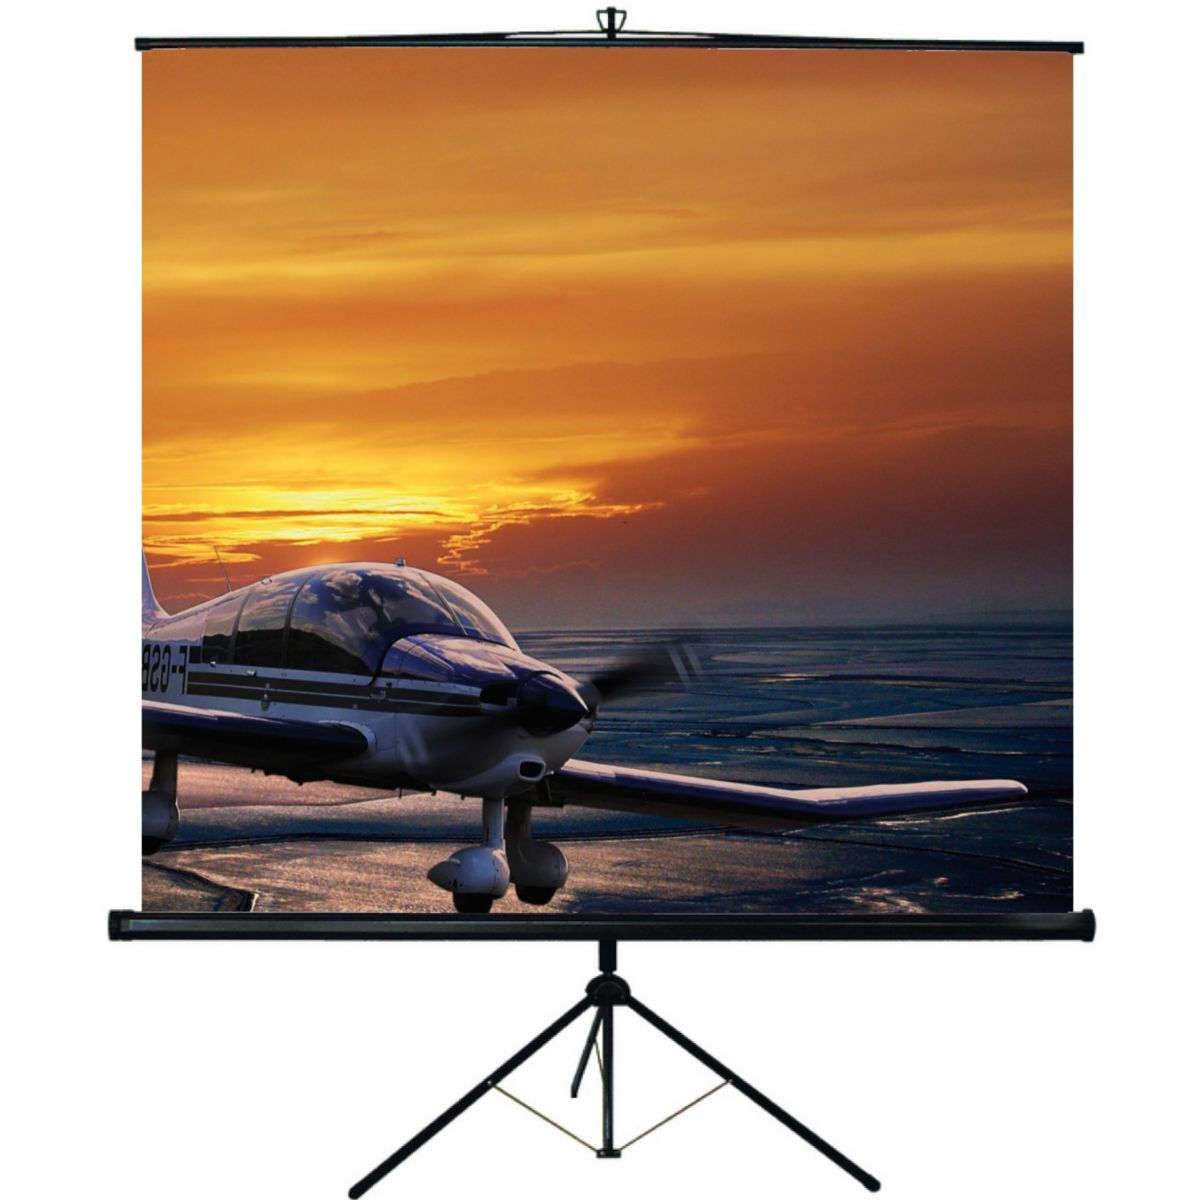 Ecran de projection oray screen trepied 175*175 manuel - 20% de remise imm�diate avec le code : deal20 (photo)